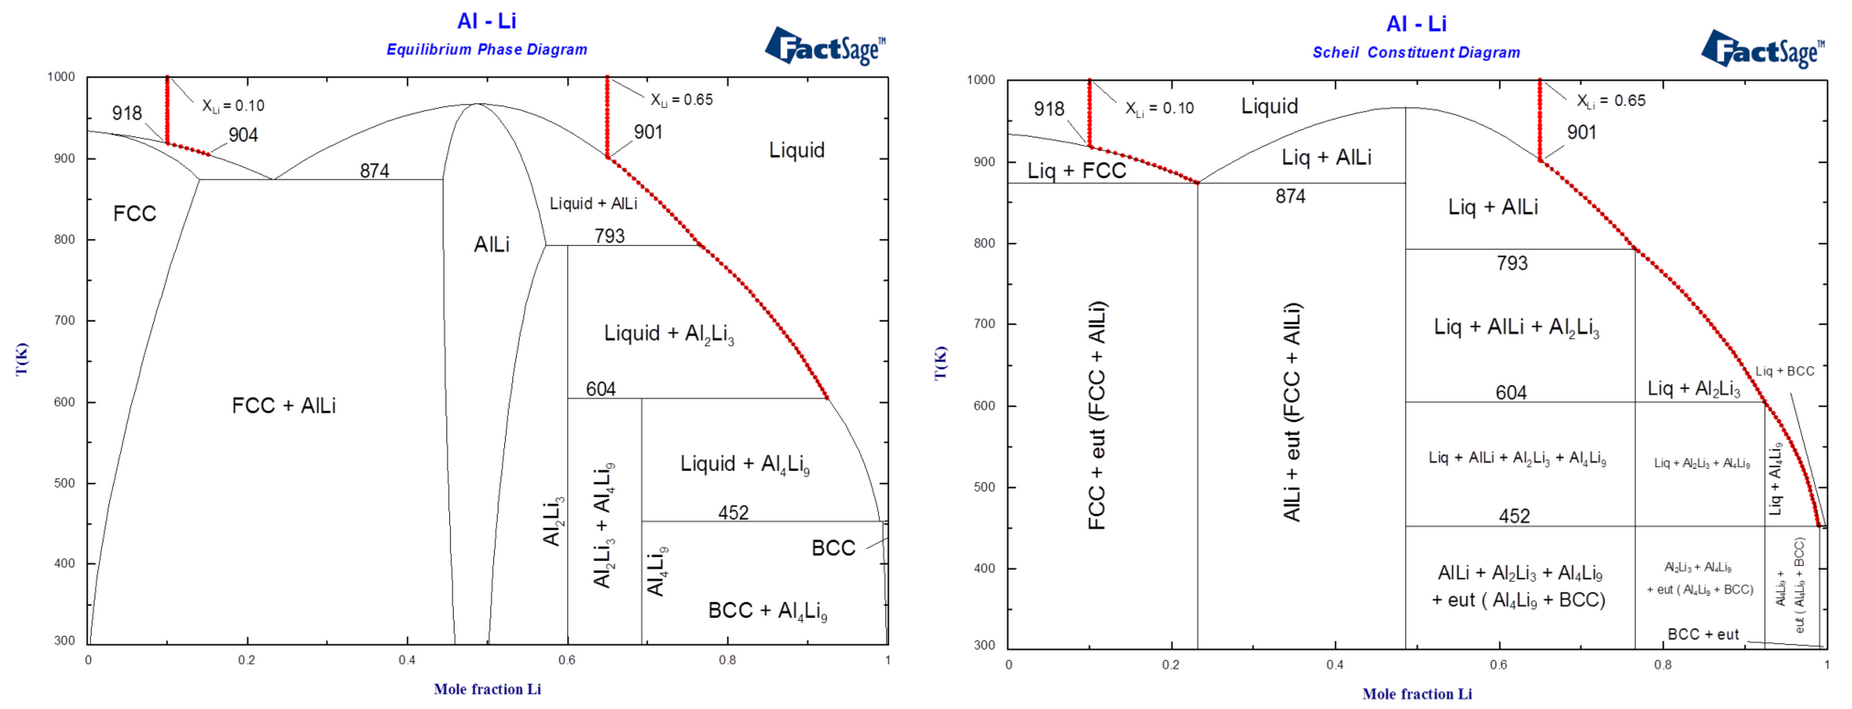 Whats new in factsage 71 diagrams of the al li system illustrating solidification of alloys of compositions xli 010 and xli 065 1 calculated phase diagram and equilibrium ccuart Images